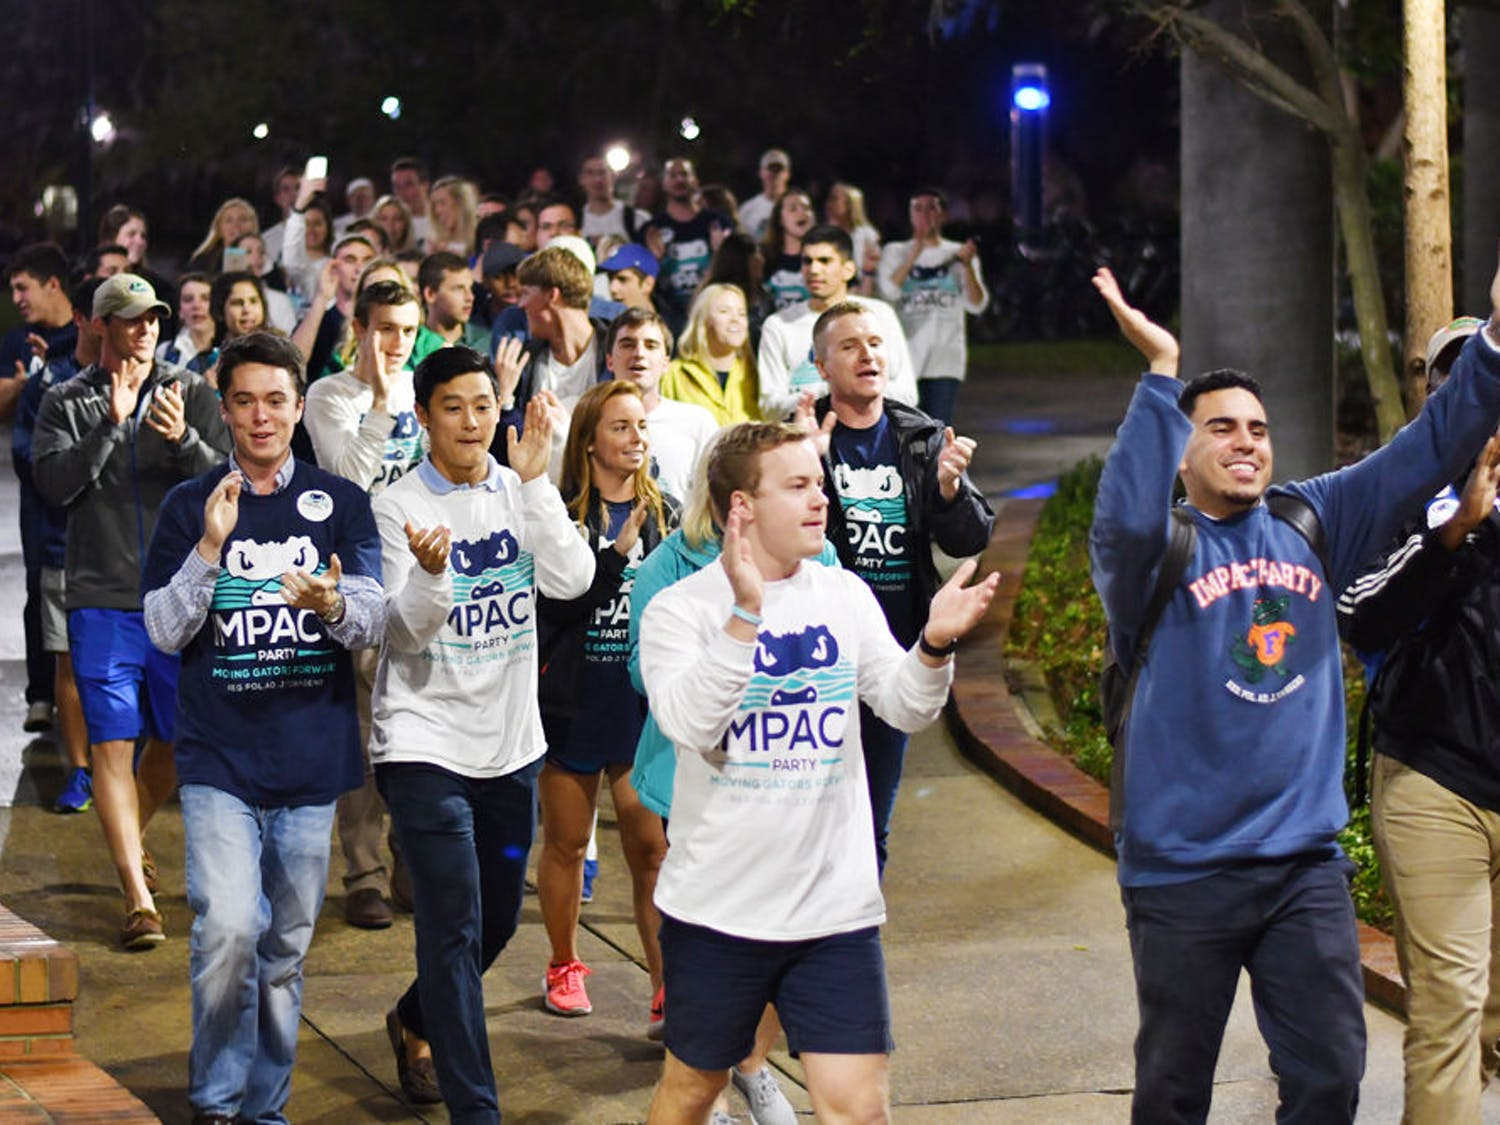 An amendment to allow online voting failed, along with 10 other amendments to UF's Student Government Constitution on Wednesday. Impact also won 48 of 50 Senate seats, with one independent candidate winning a Graduate seat and a write-in candidate winning a seat for the College of Dentistry.